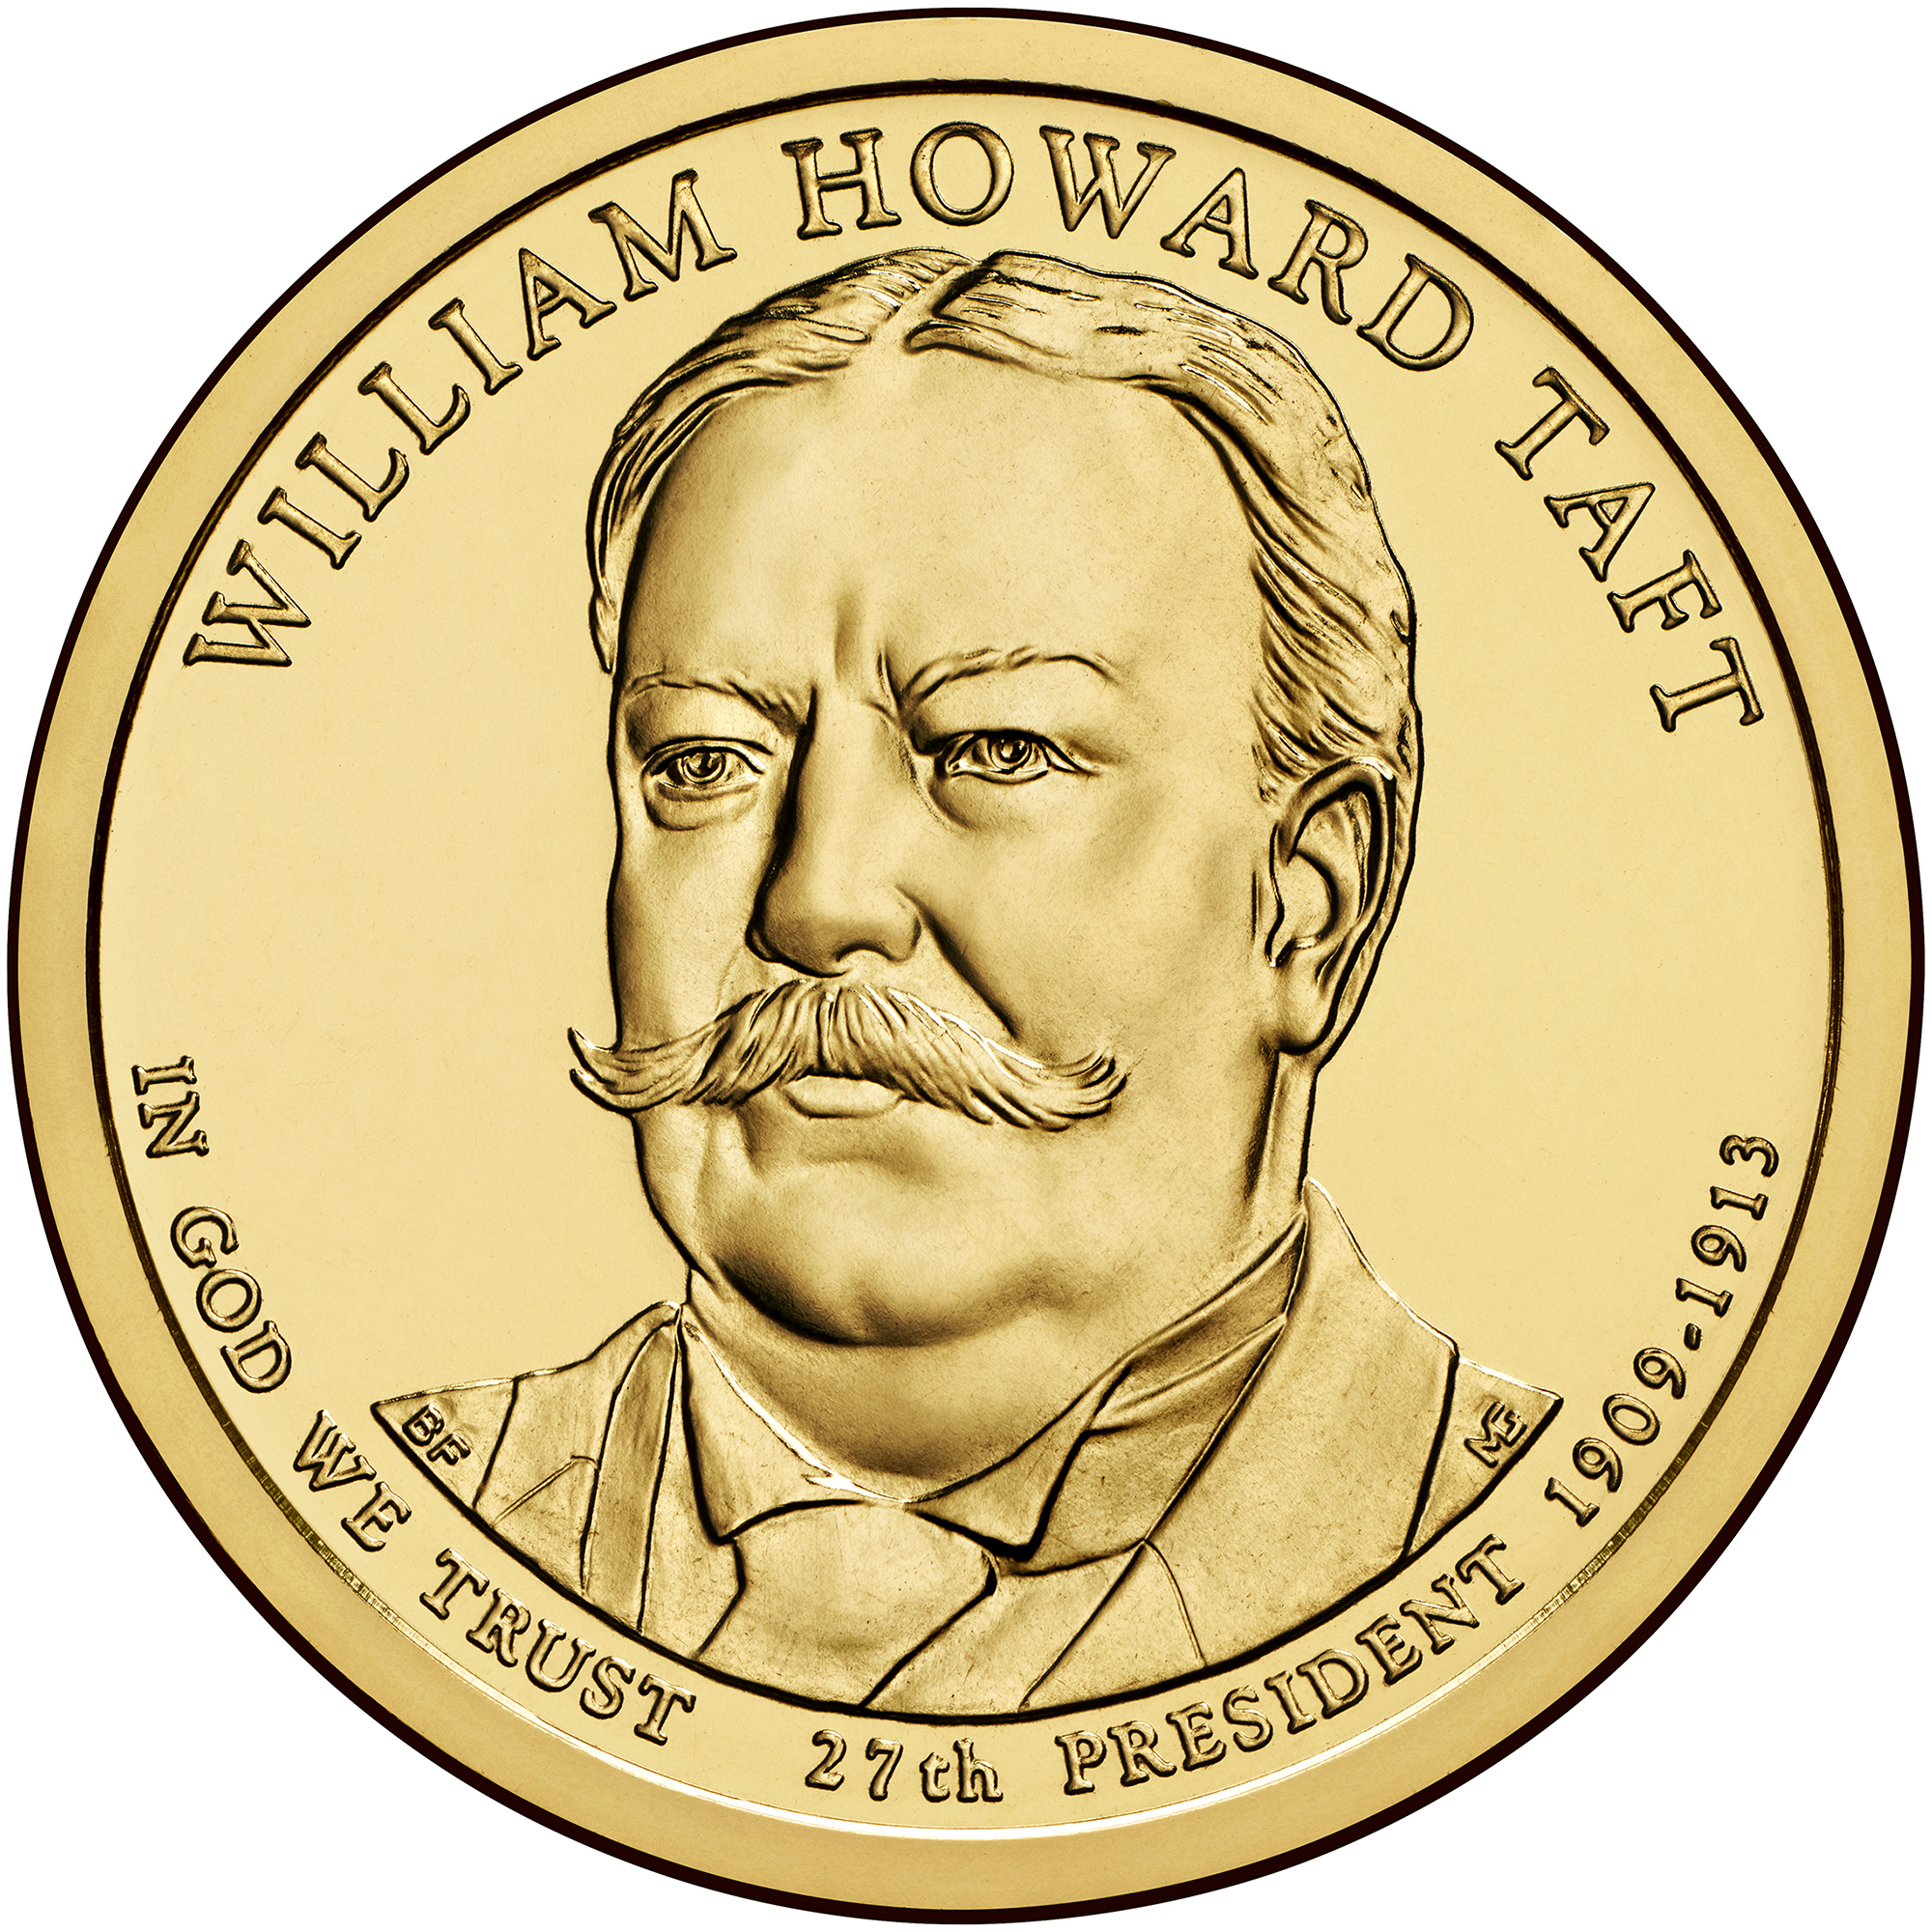 2013 Presidential Dollar Coin William Howard Taft Uncirculated Obverse